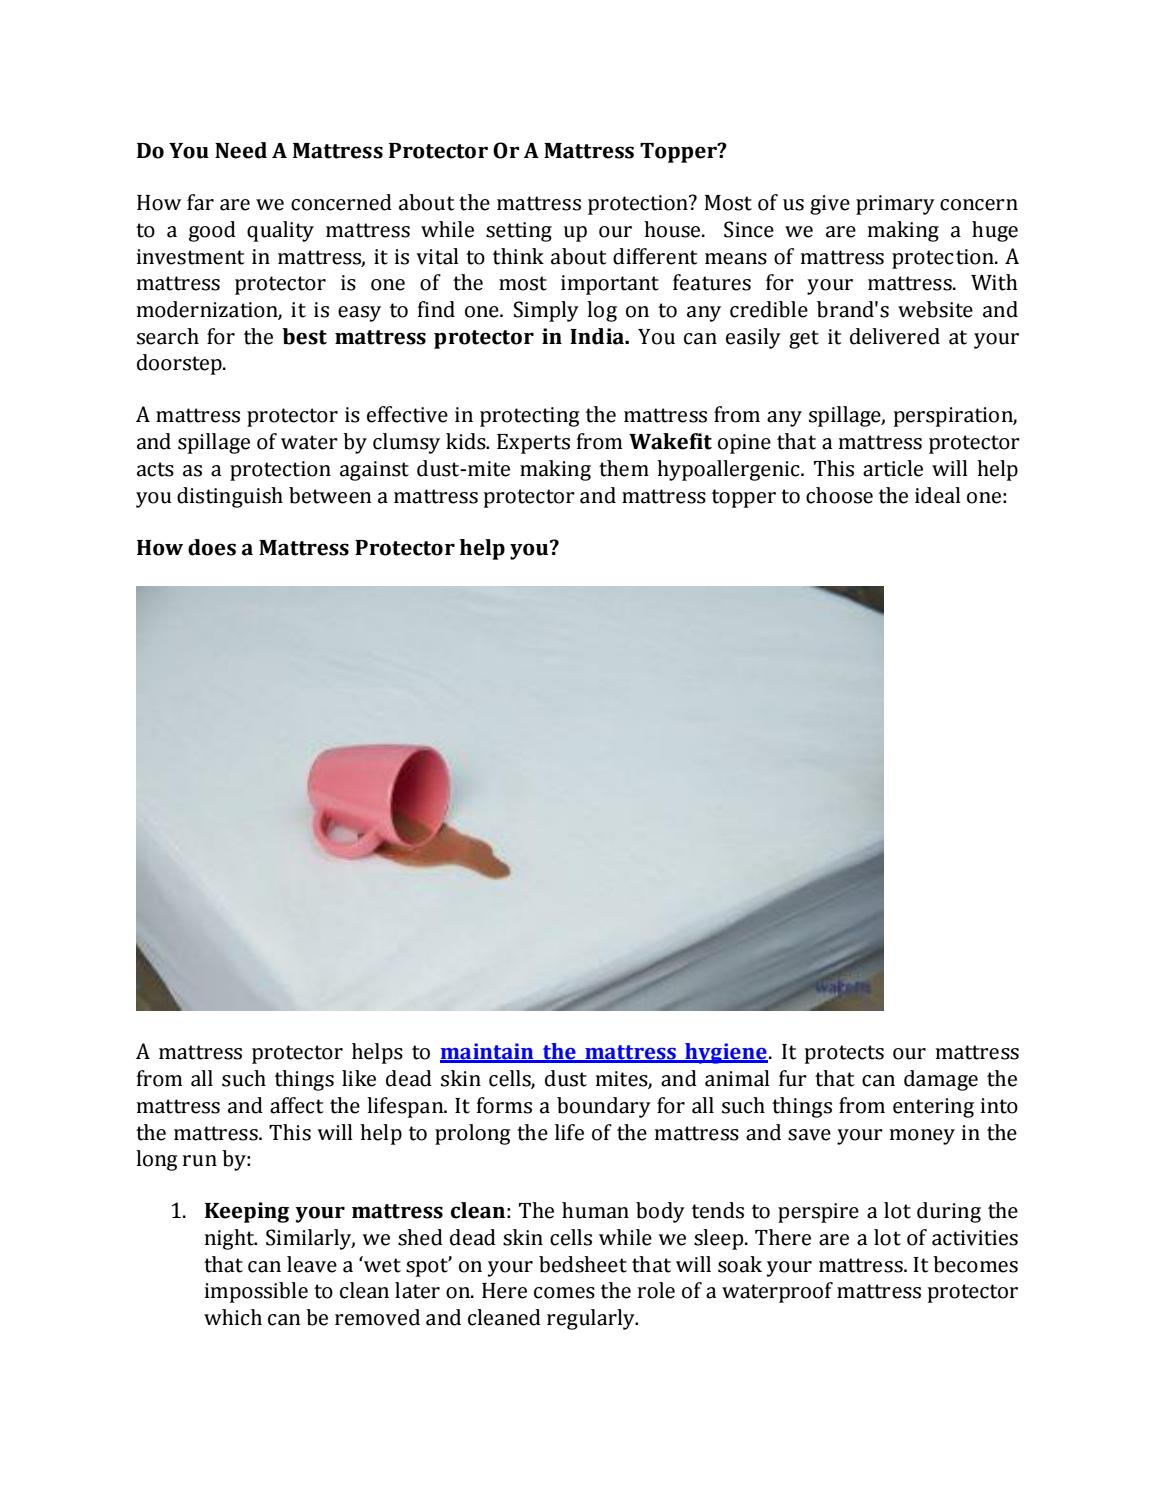 Do You Need A Mattress Protector Or A Mattress Topper By Wakefitmattress Issuu